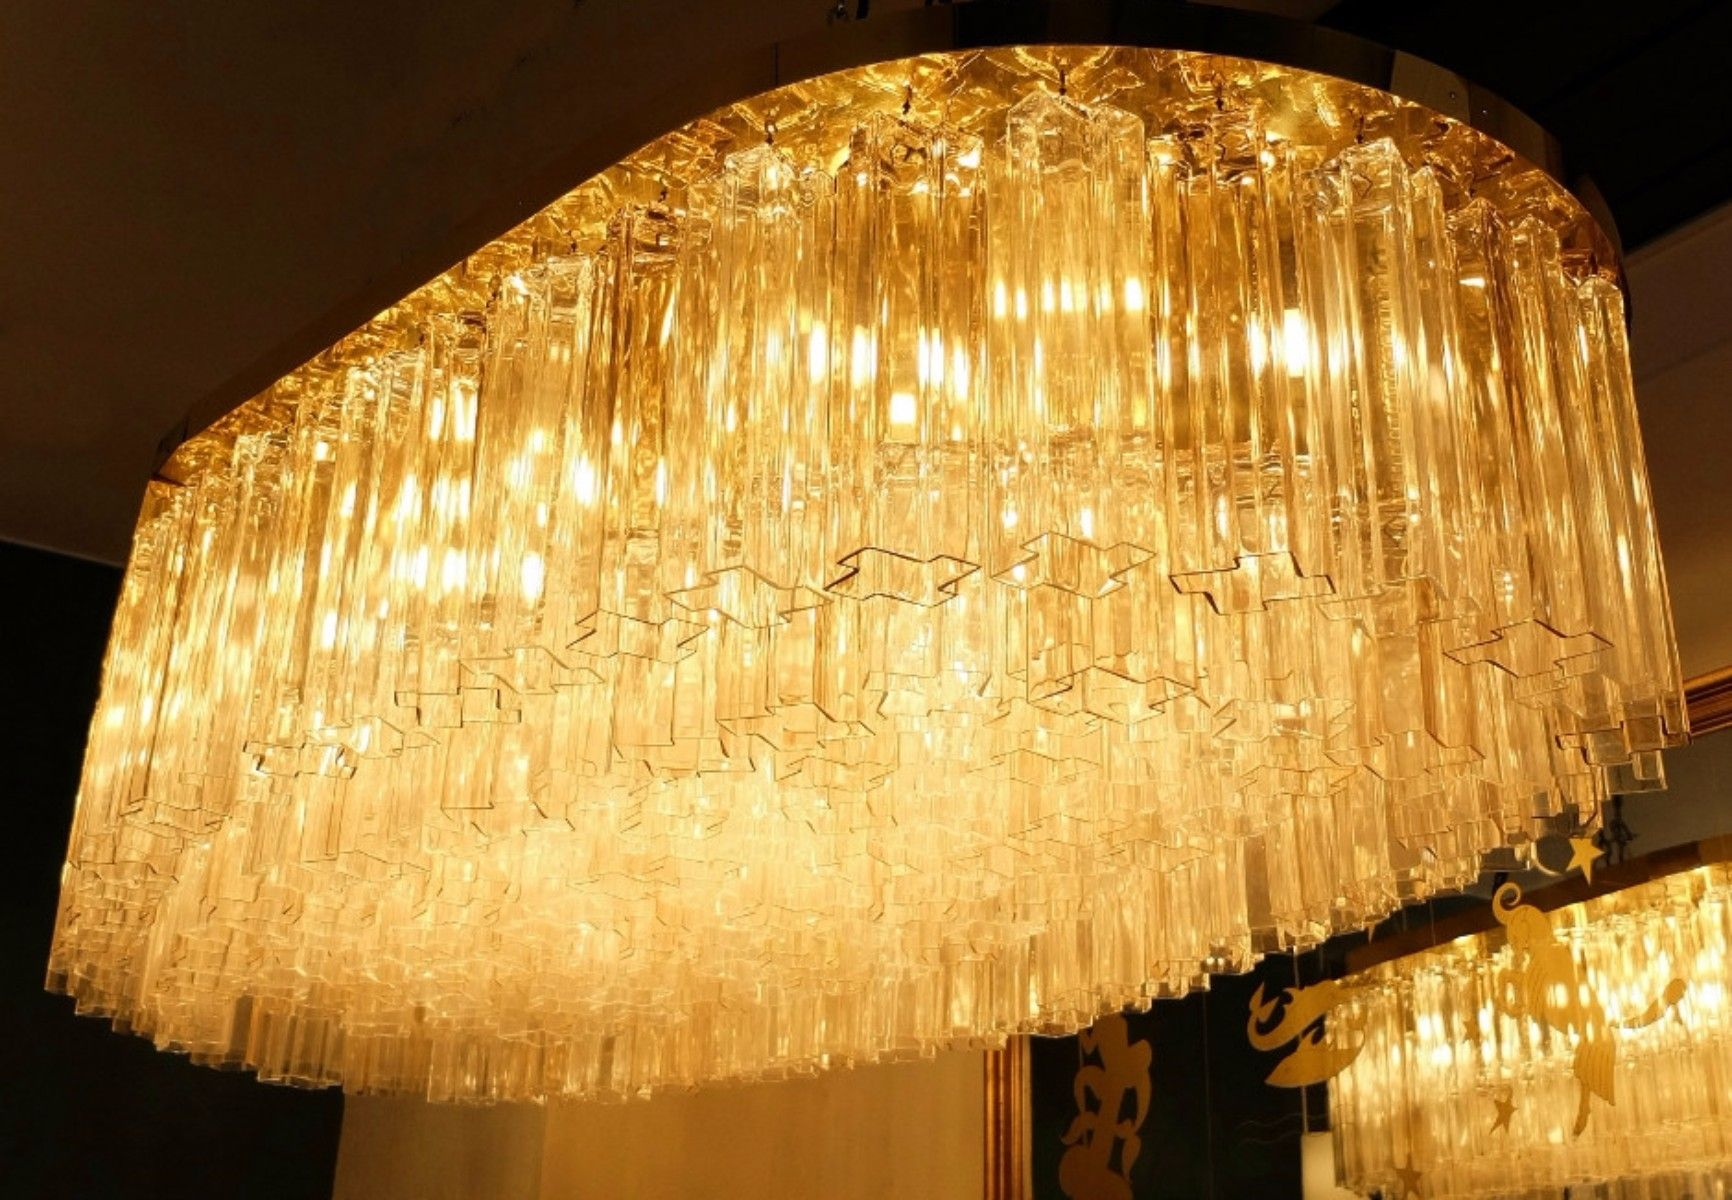 chandelier tronchi en verre murano 1970s en vente sur pamono. Black Bedroom Furniture Sets. Home Design Ideas